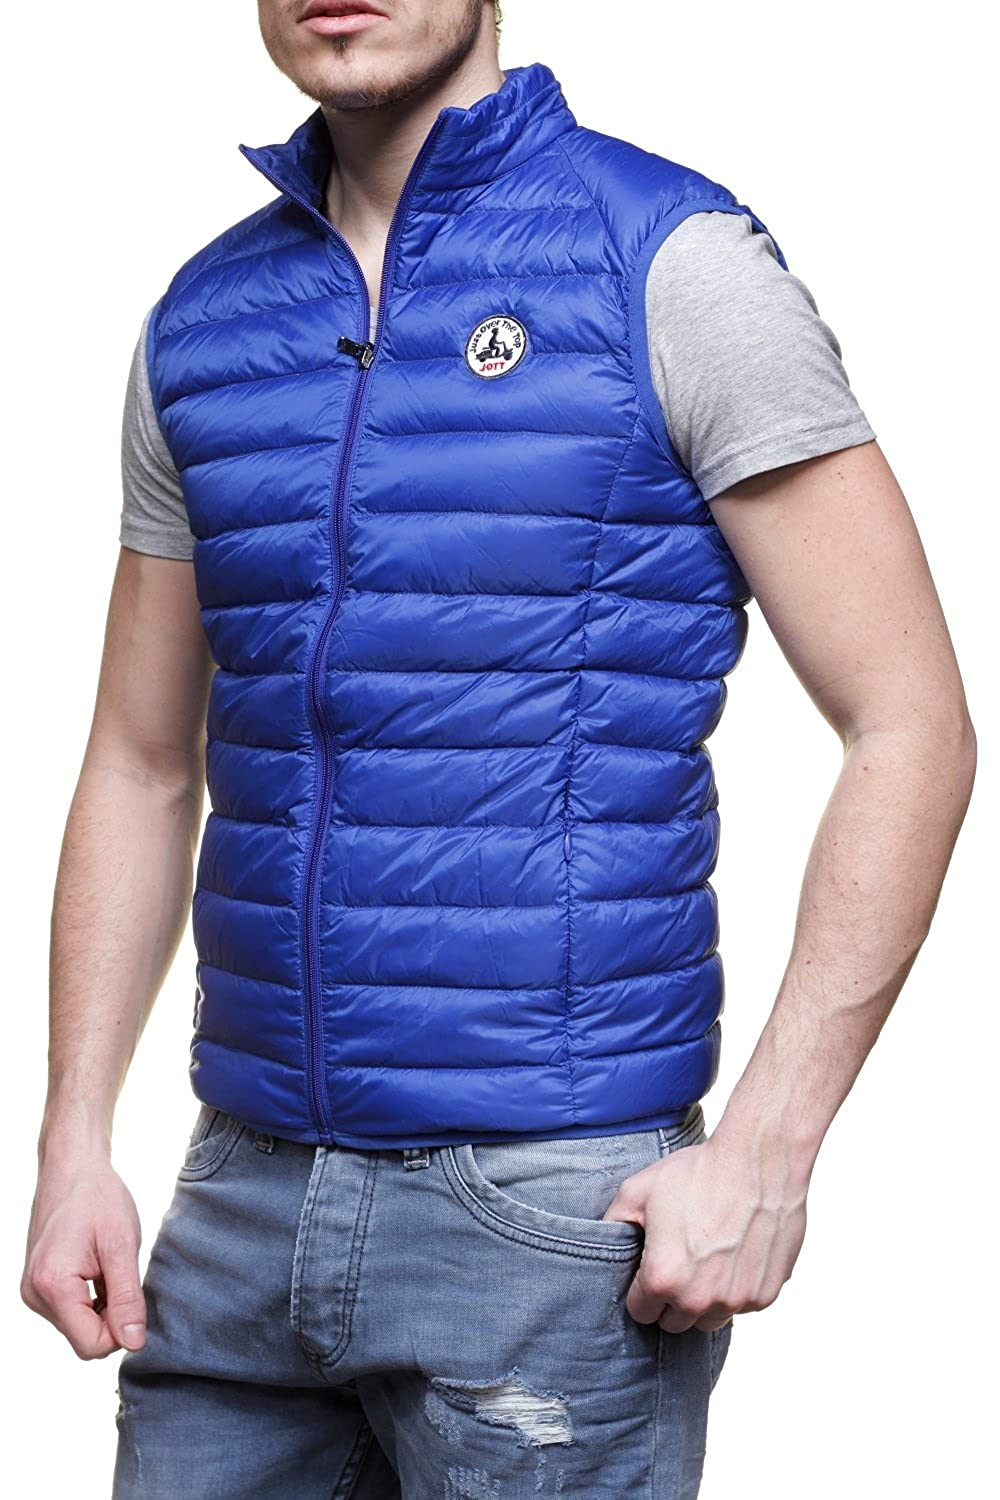 Just Over The Top JOTT - Chaqueta - para Hombre Azul Small  Amazon.es  Ropa  y accesorios 8cfa2b10906